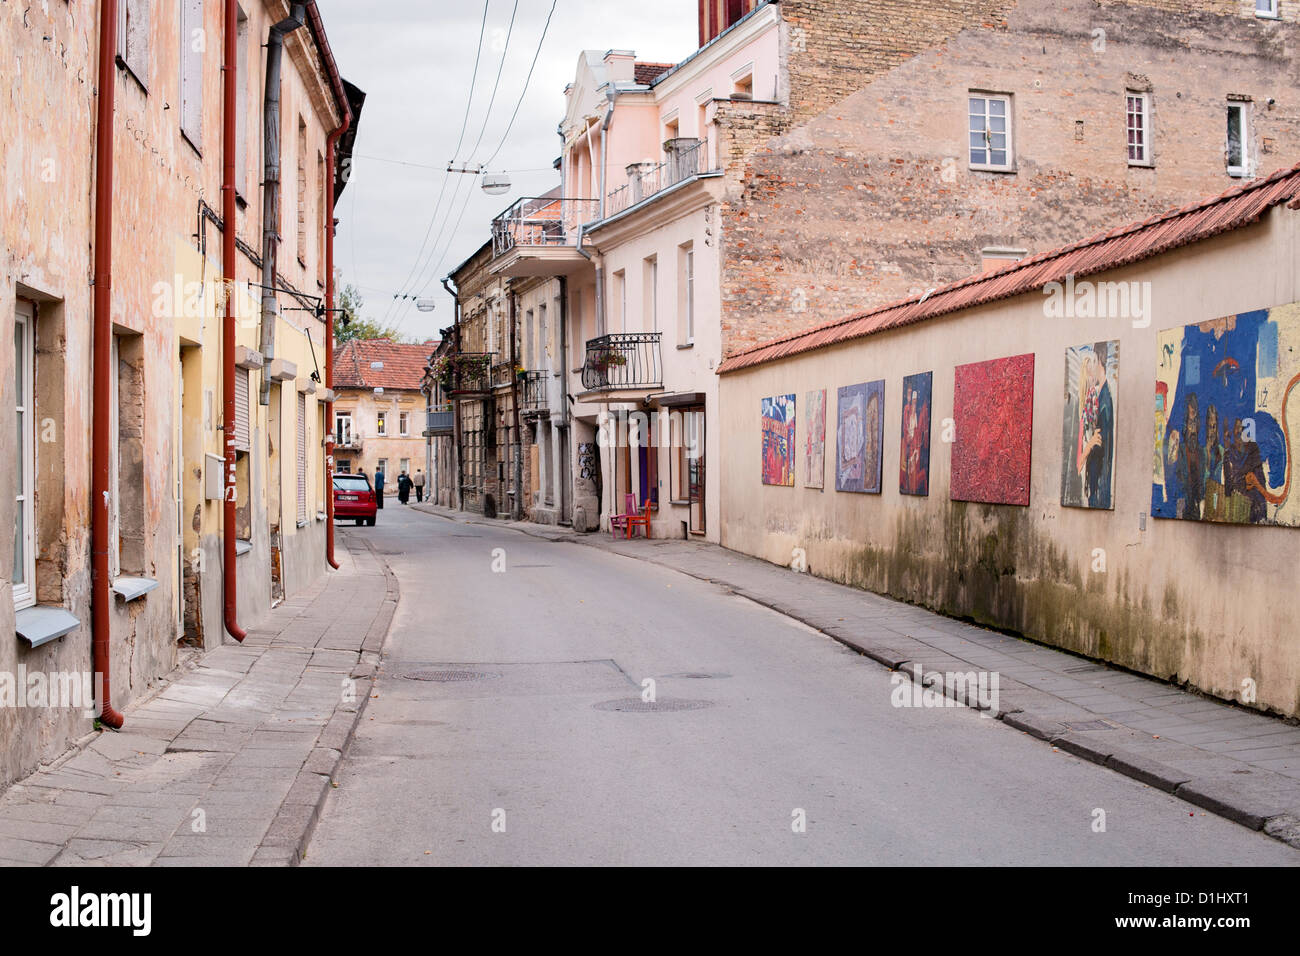 Paupio street in the Uzupis district of Vilnius, the capital of Lithuania. - Stock Image